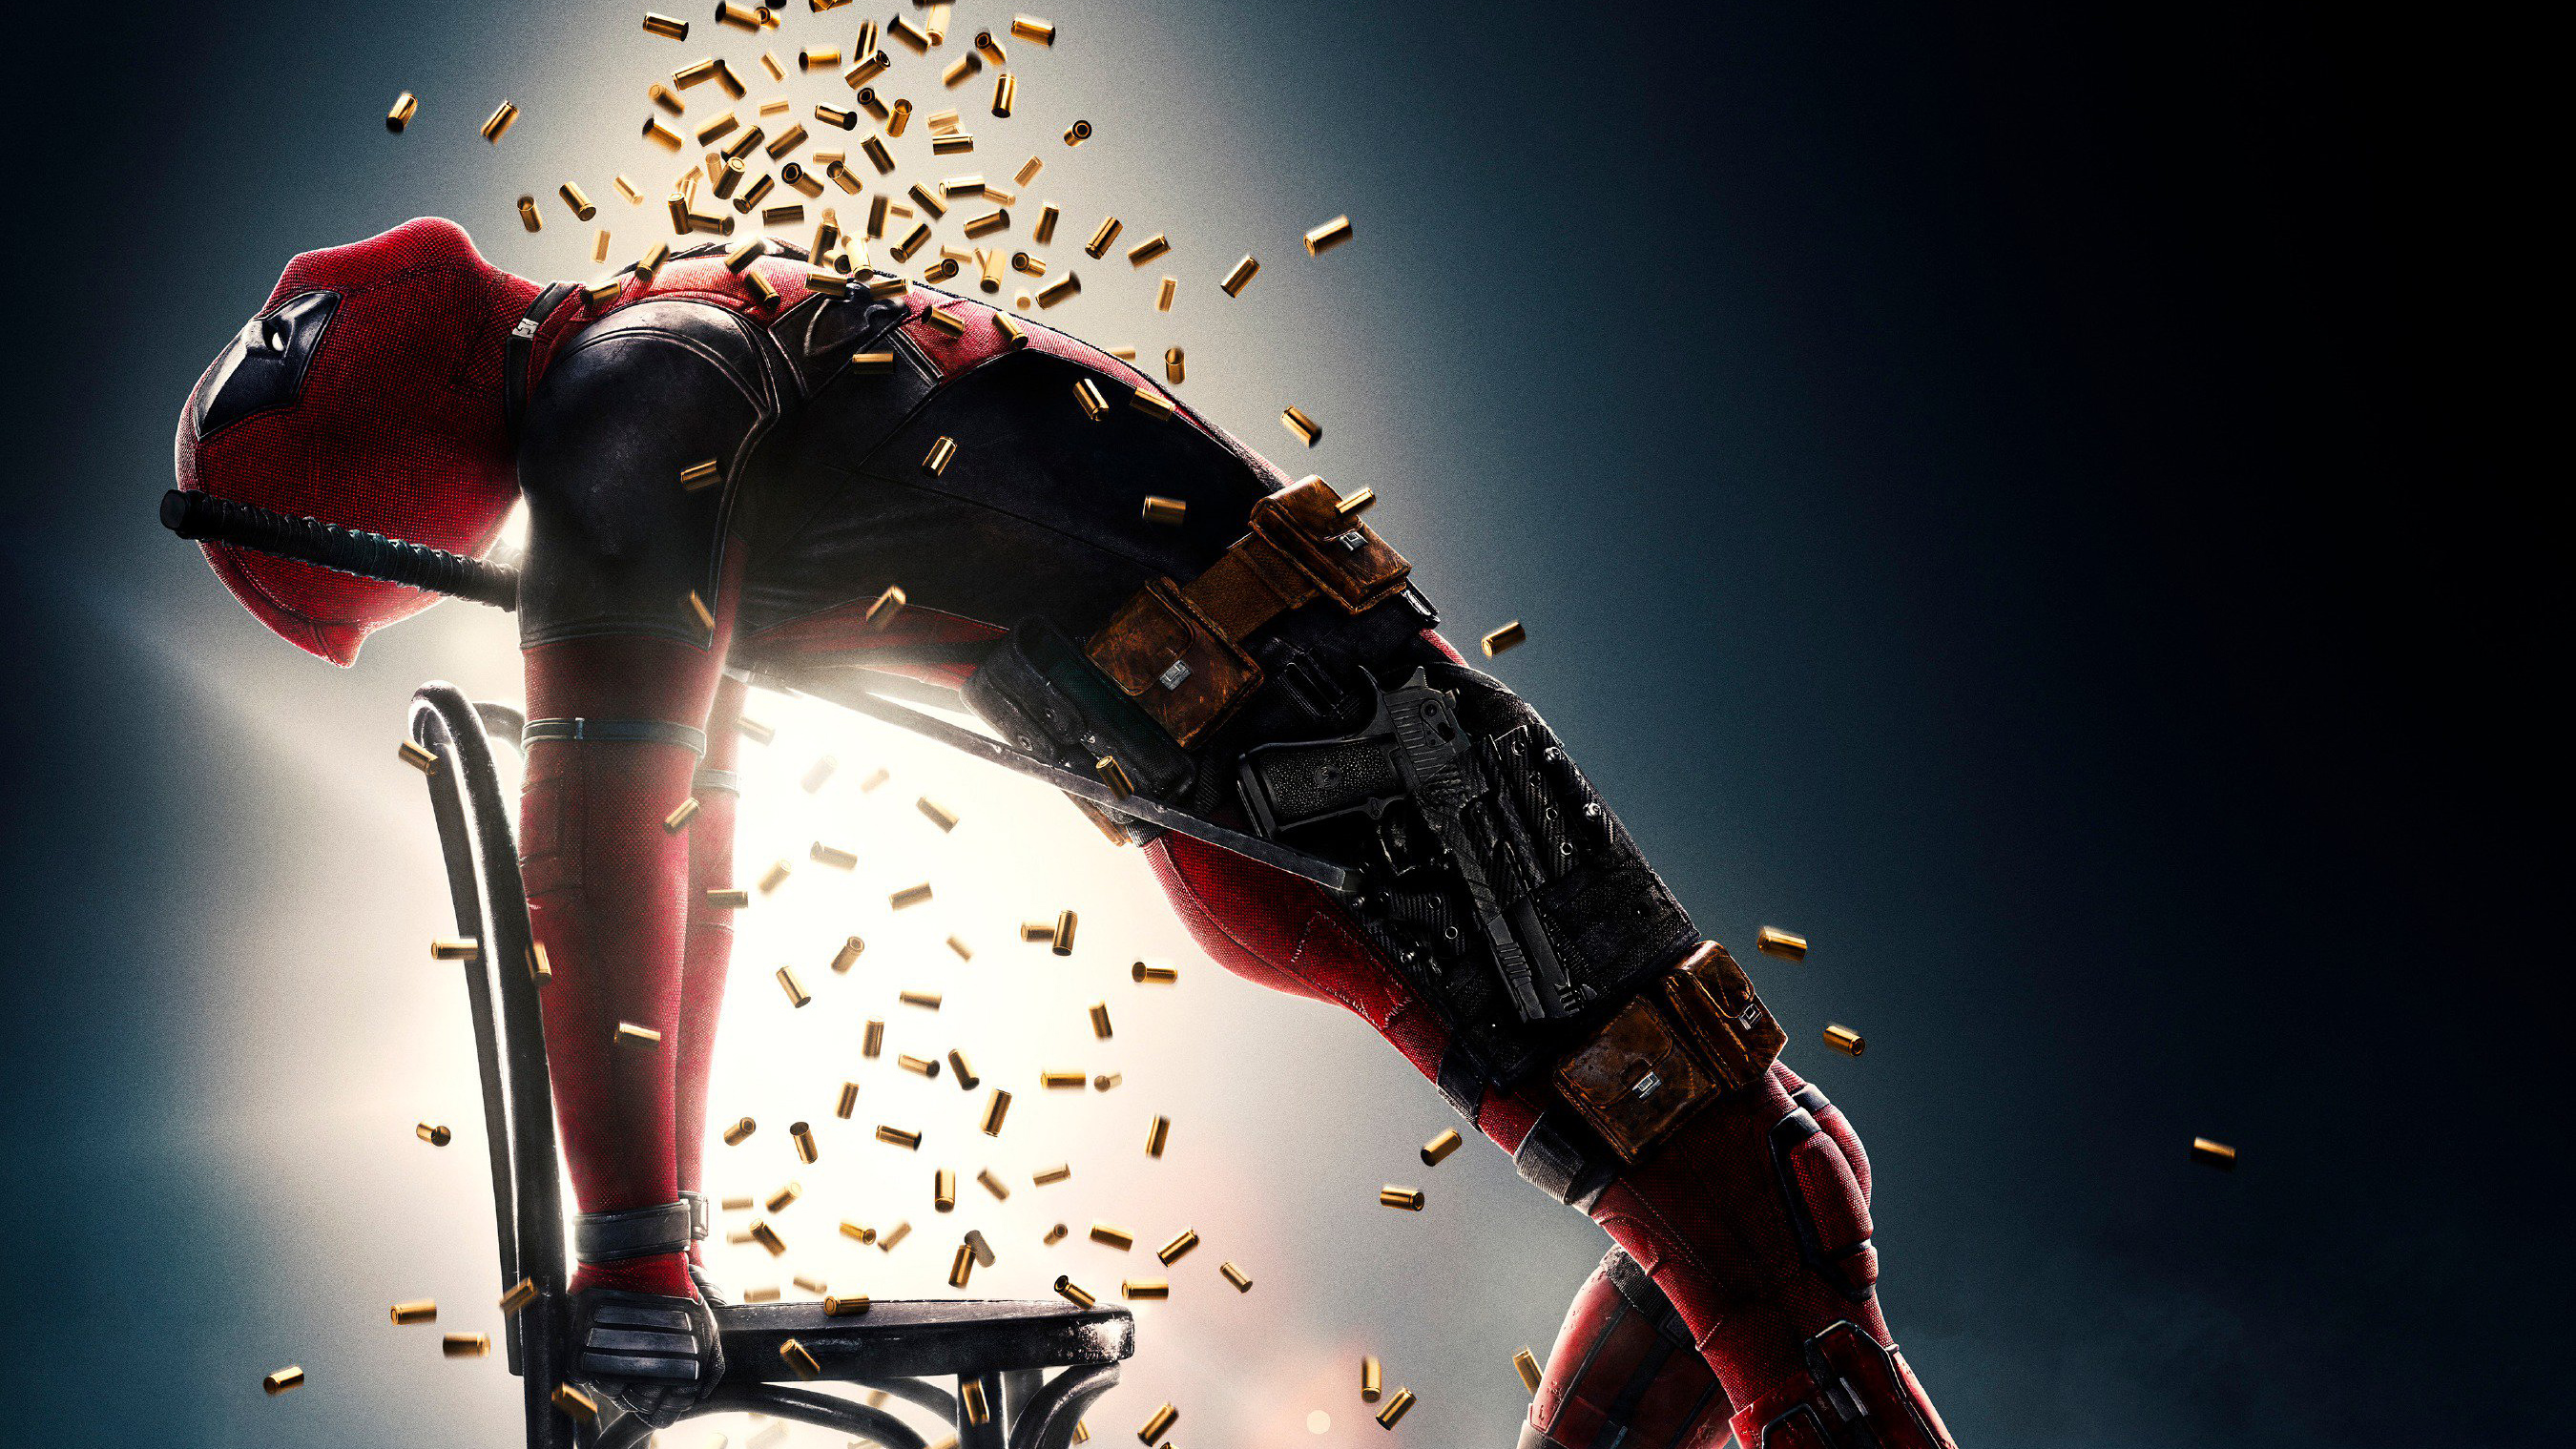 Deadpool 2 Poster 2018 Movie, HD Movies, 4k Wallpapers